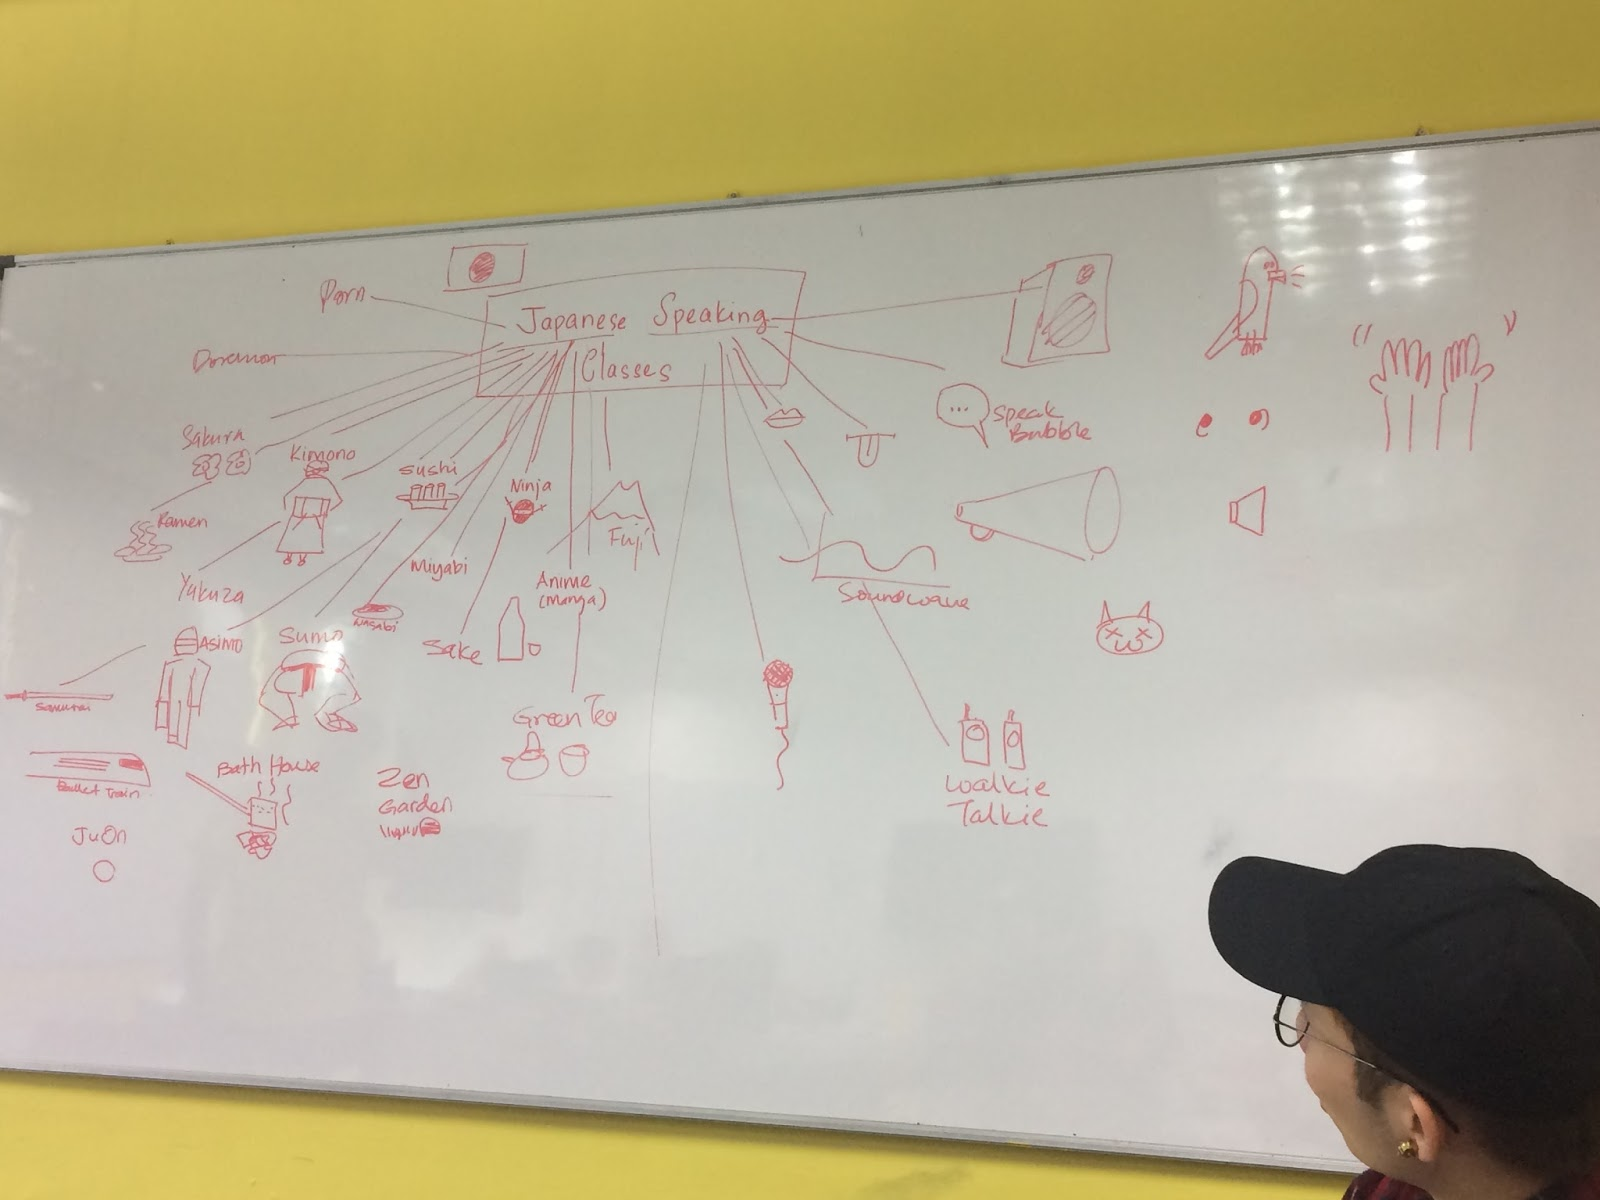 he also said that with the help of mind maps it sometimes would give a simple and rough sketches to the designer